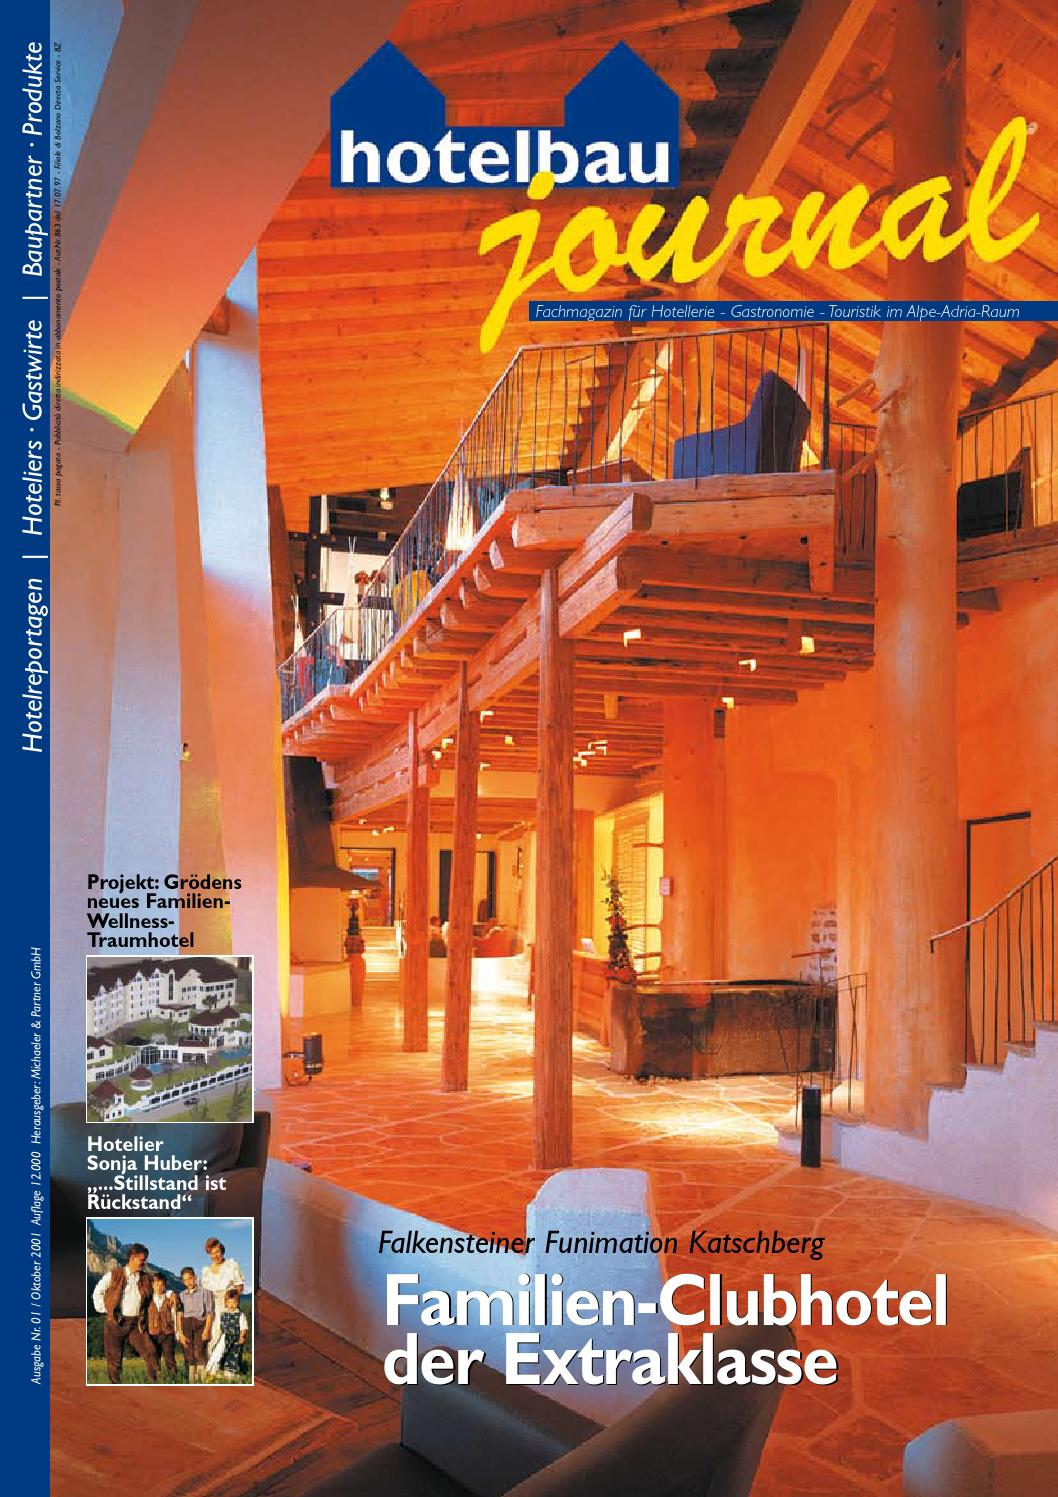 Hotelbau Journal 01 De By Michaeler Partner Issuu